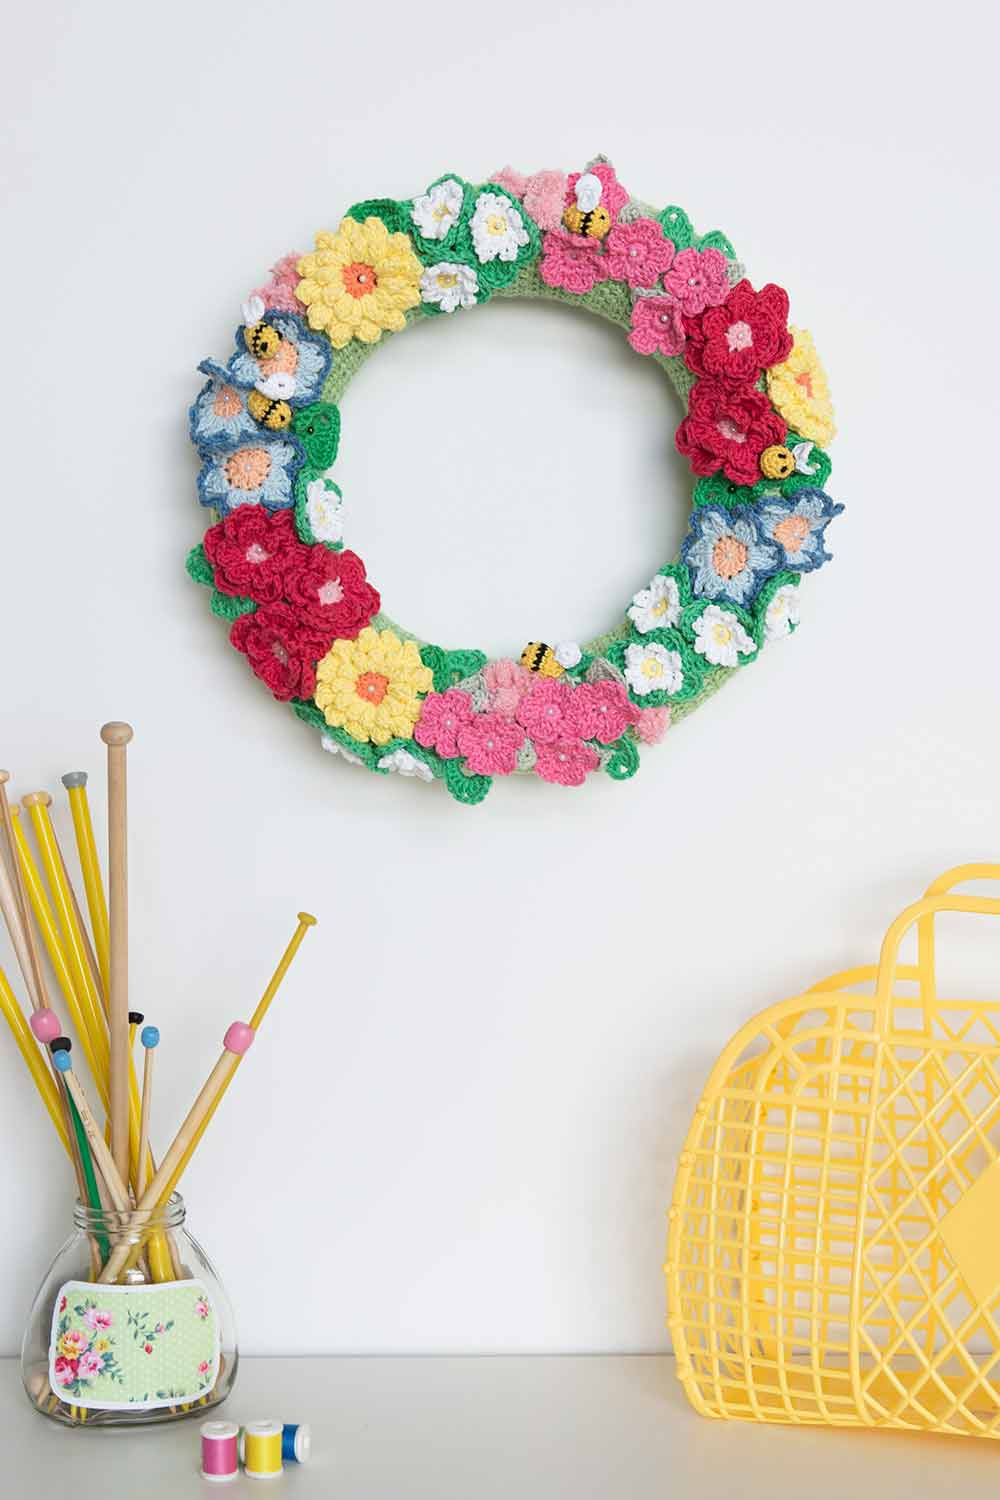 Paper Embroidery Cards Free Patterns 40 Crochet Flower Patterns And What To Do With Them Mollie Makes